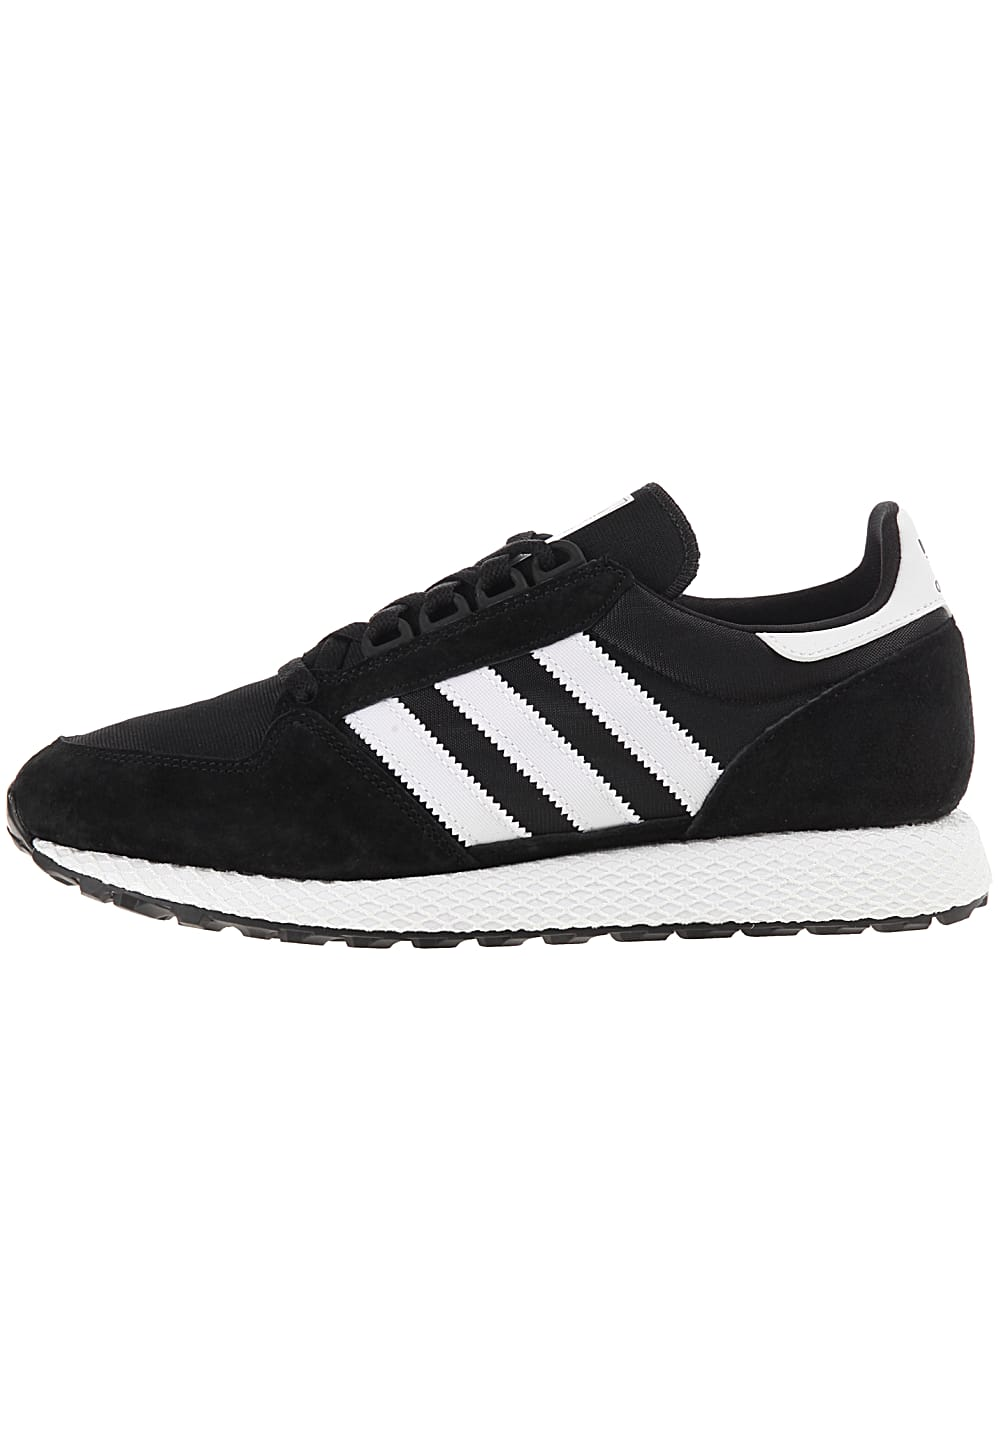 finest selection be419 c3882 adidas Originals Forest Grove Sneaker für Herren Schwarz